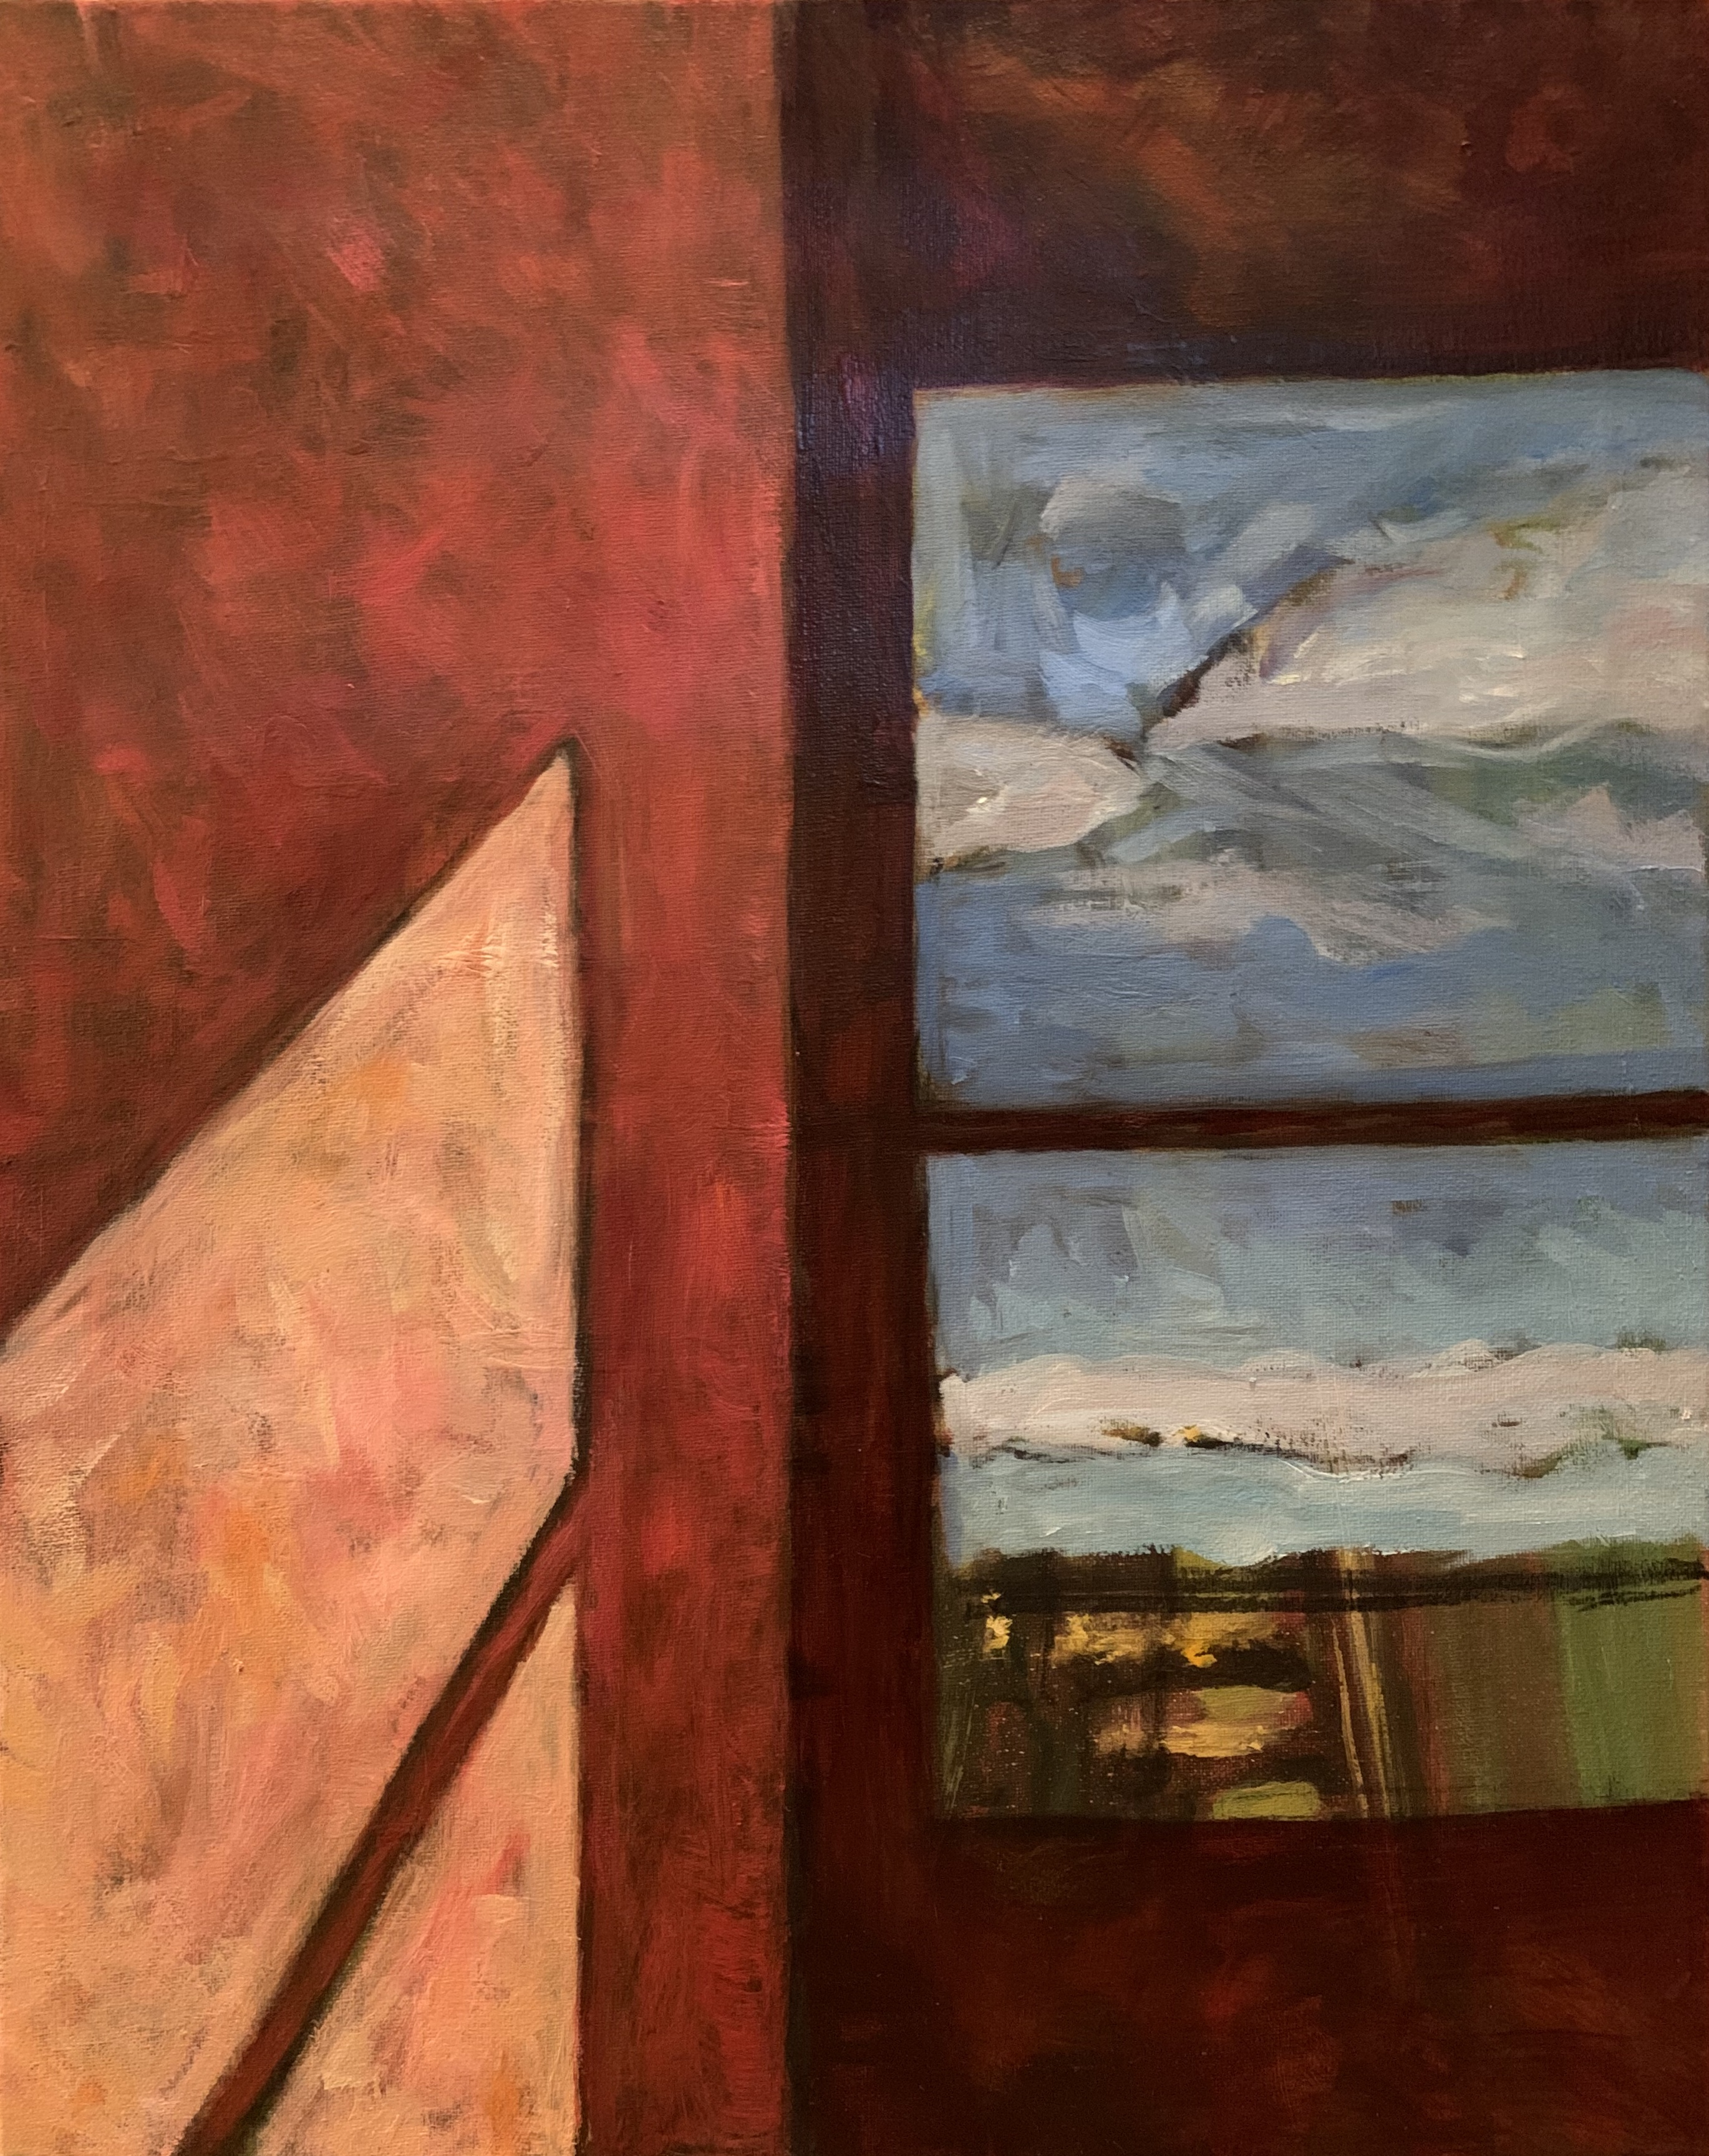 'Alone 6', oil on canvas by Ed Hall ($800) ⎼ 'This series deals with the loneliness and isolation that comes with a 100 year pandemic. Initially I was interested in the view through the window as a metaphor for longing, but in the final analysis the paintings became more about lonely interiors spaces and the stark reality of separation.'